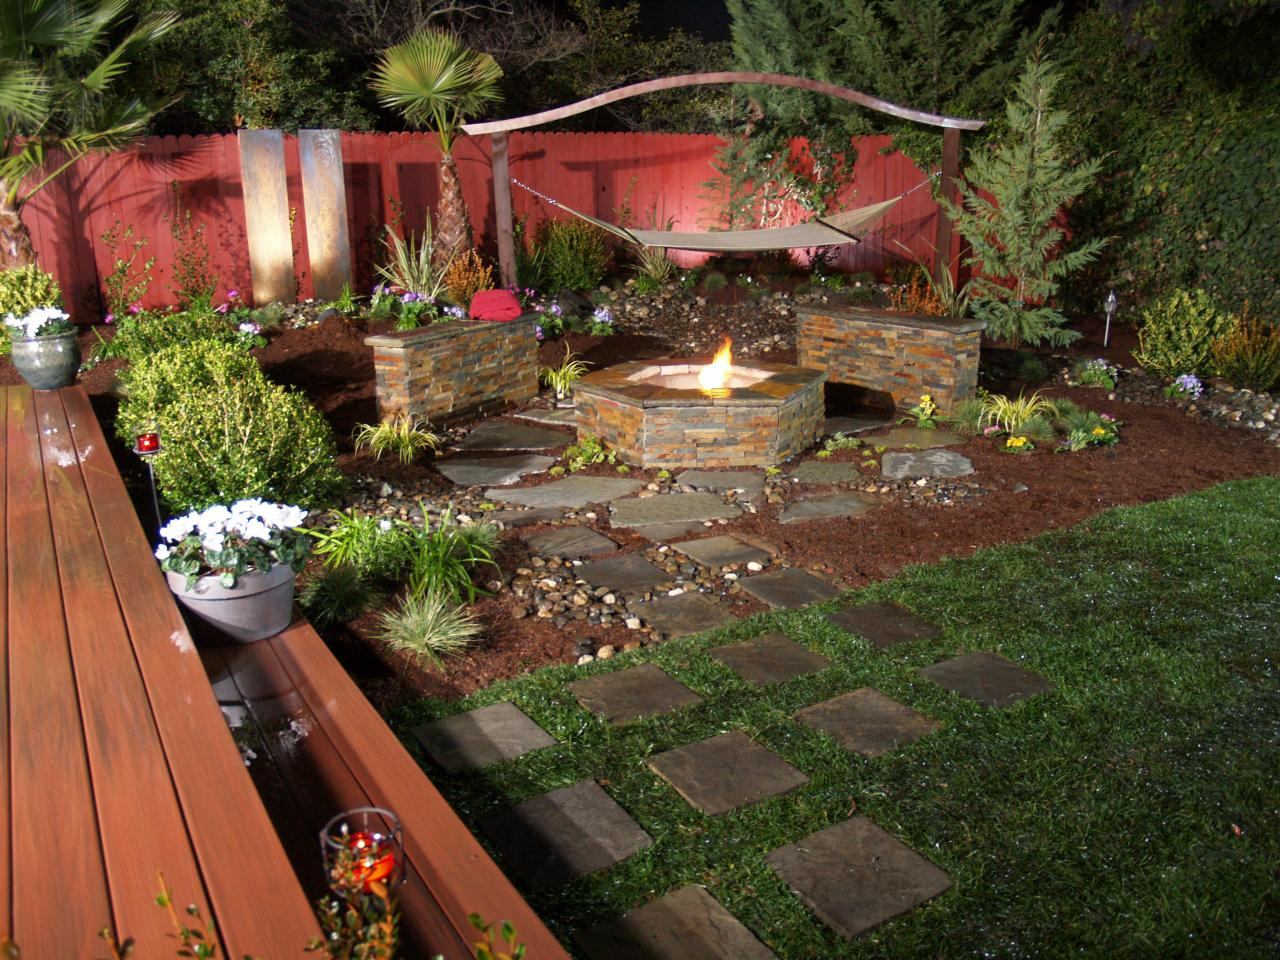 66 Fire Pit and Outdoor Fireplace Ideas | DIY Network Blog ...